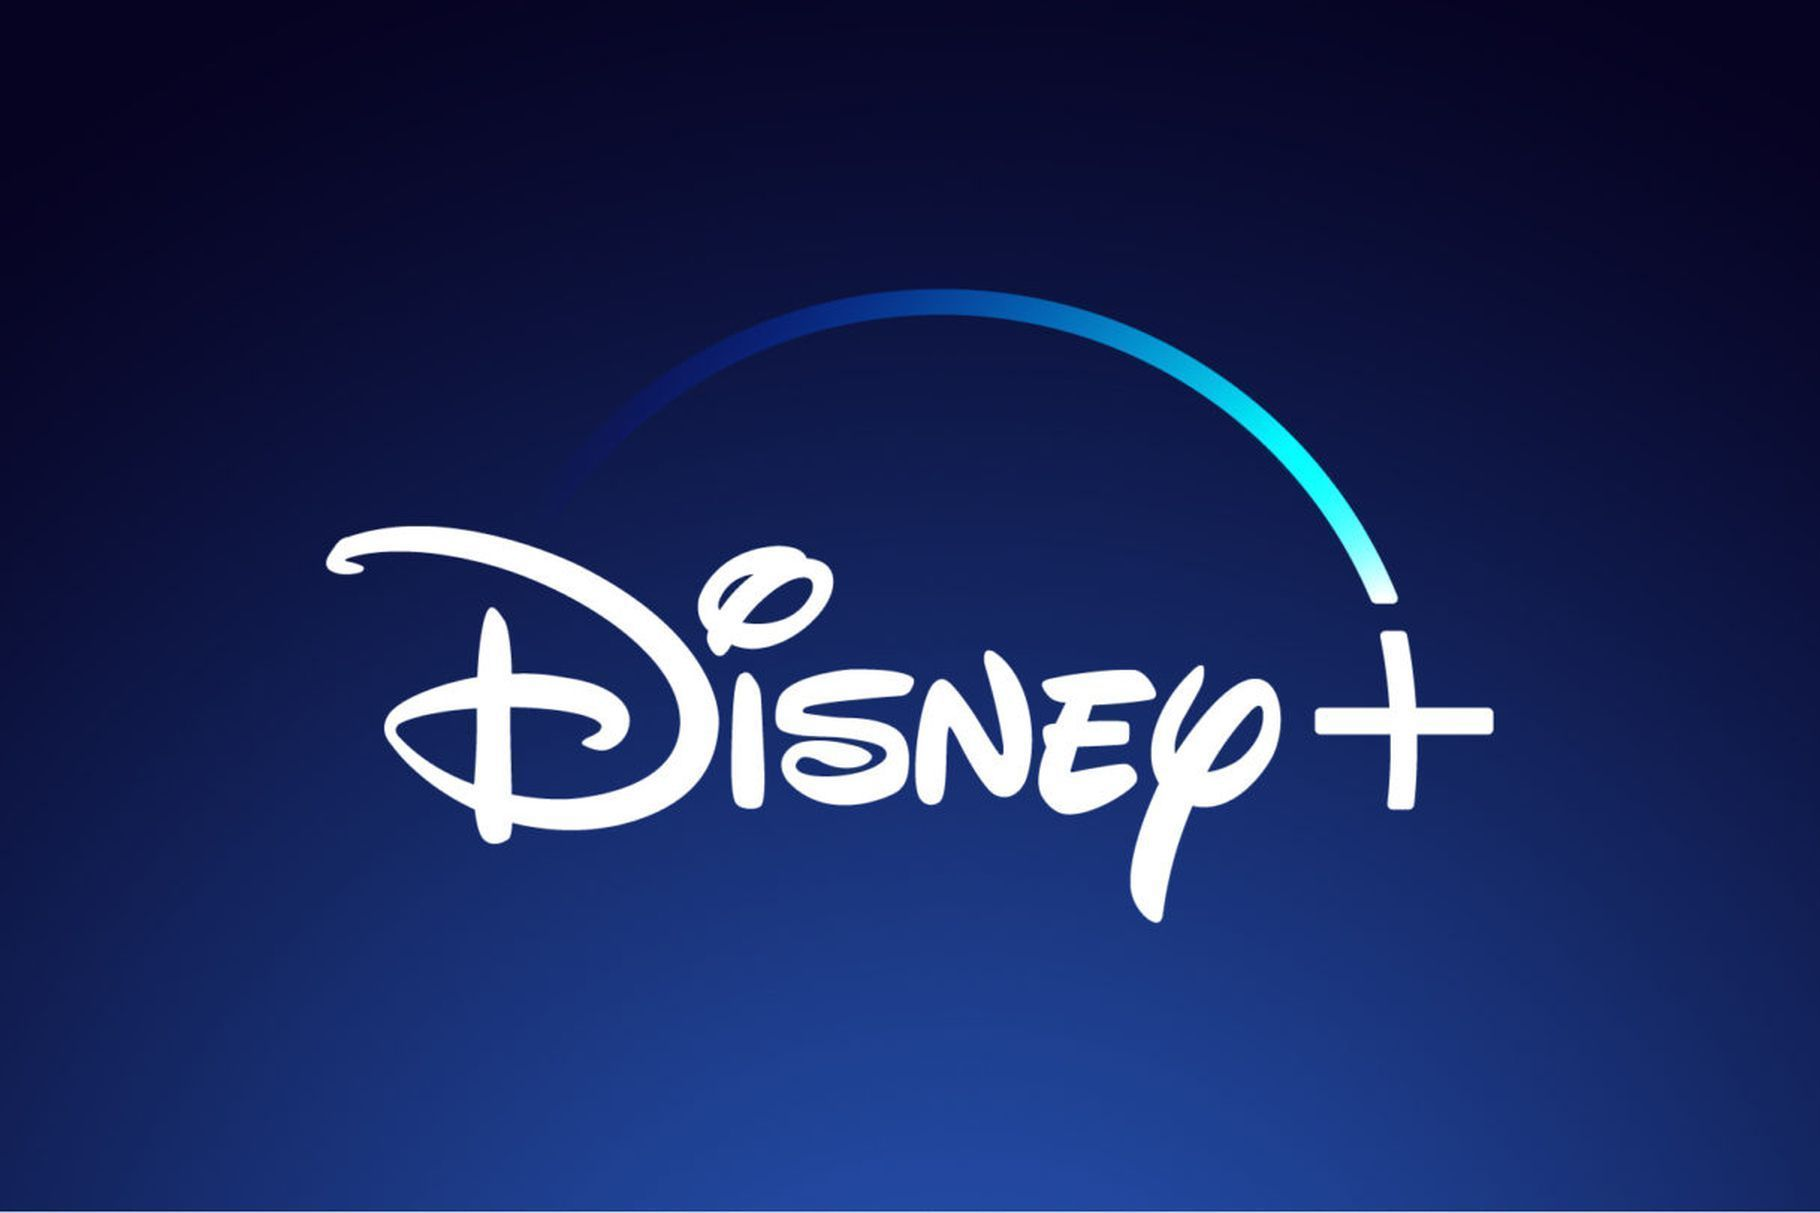 Disney Plus is officially live (or it will be by the time you read this article), bringing the Walt Disney Company right into the streaming services war.